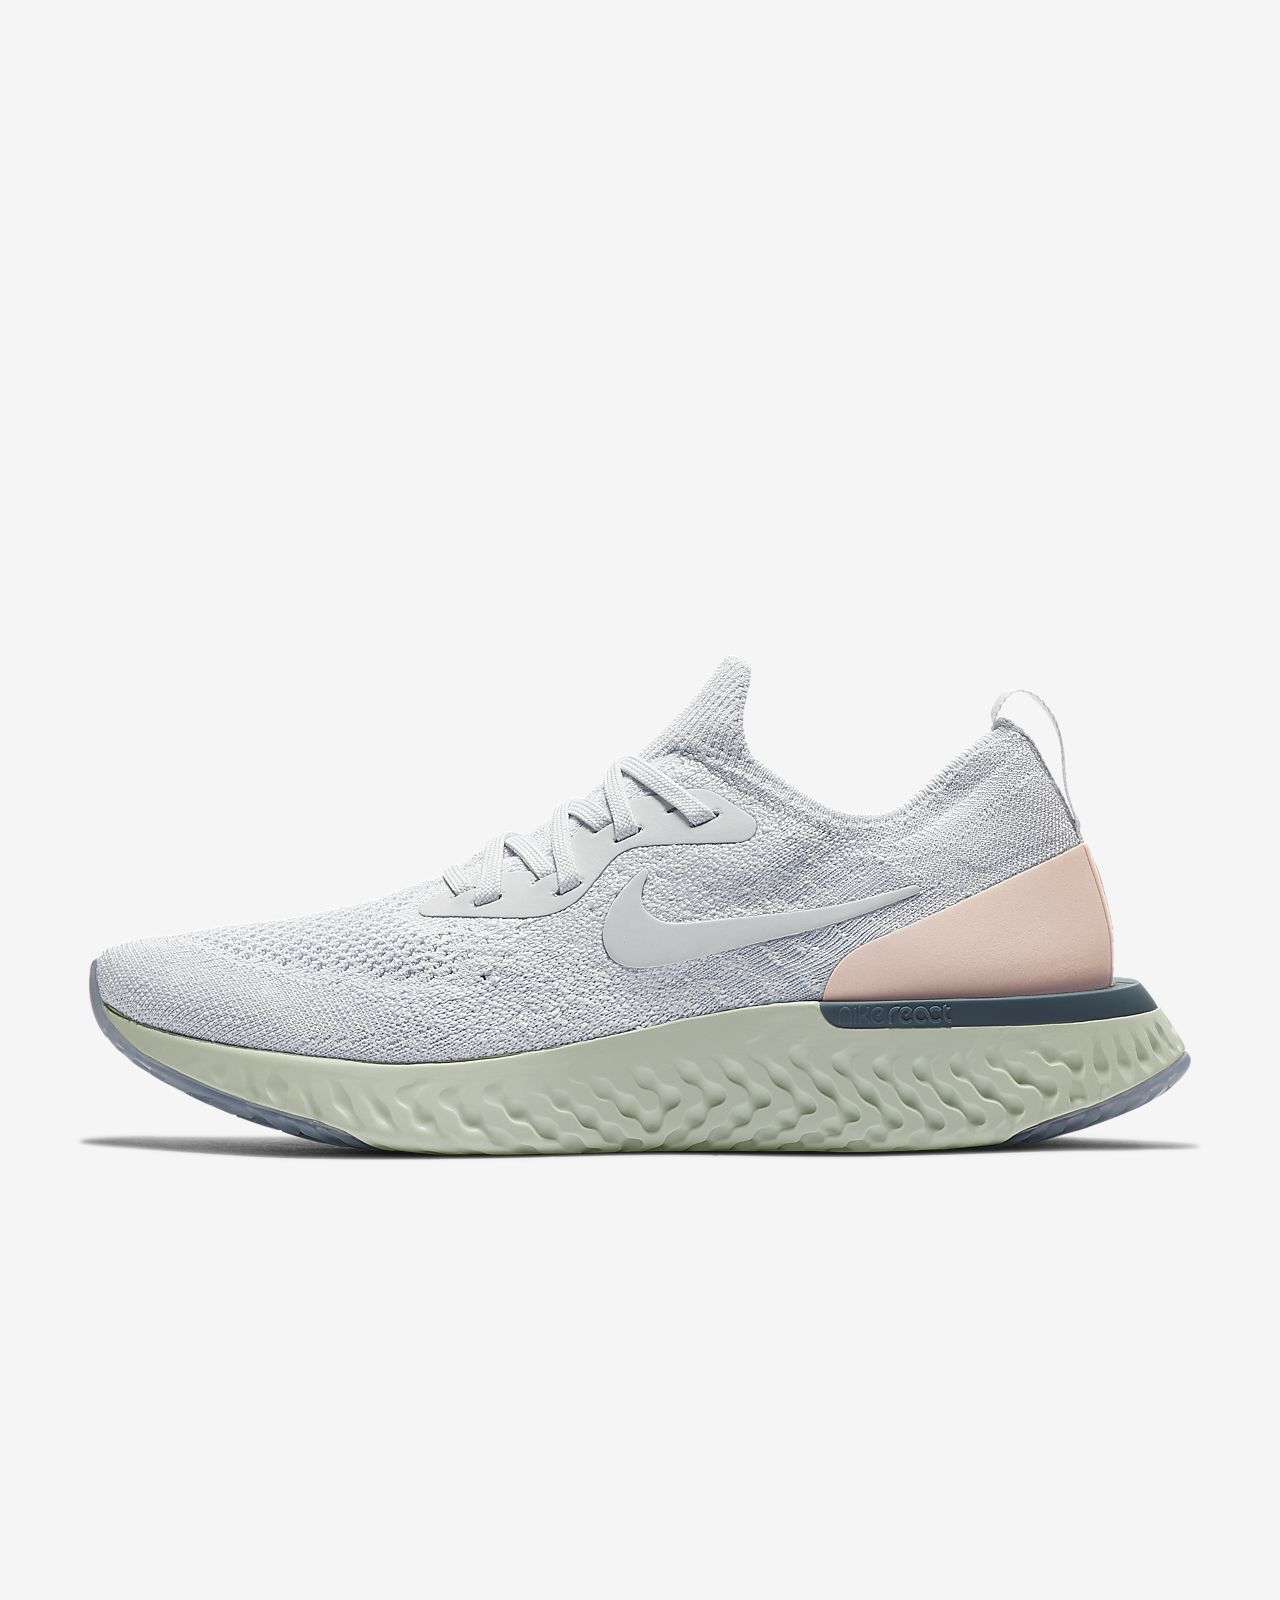 39b8057f7a82 Nike Epic React Flyknit 1 Women s Running Shoe. Nike.com